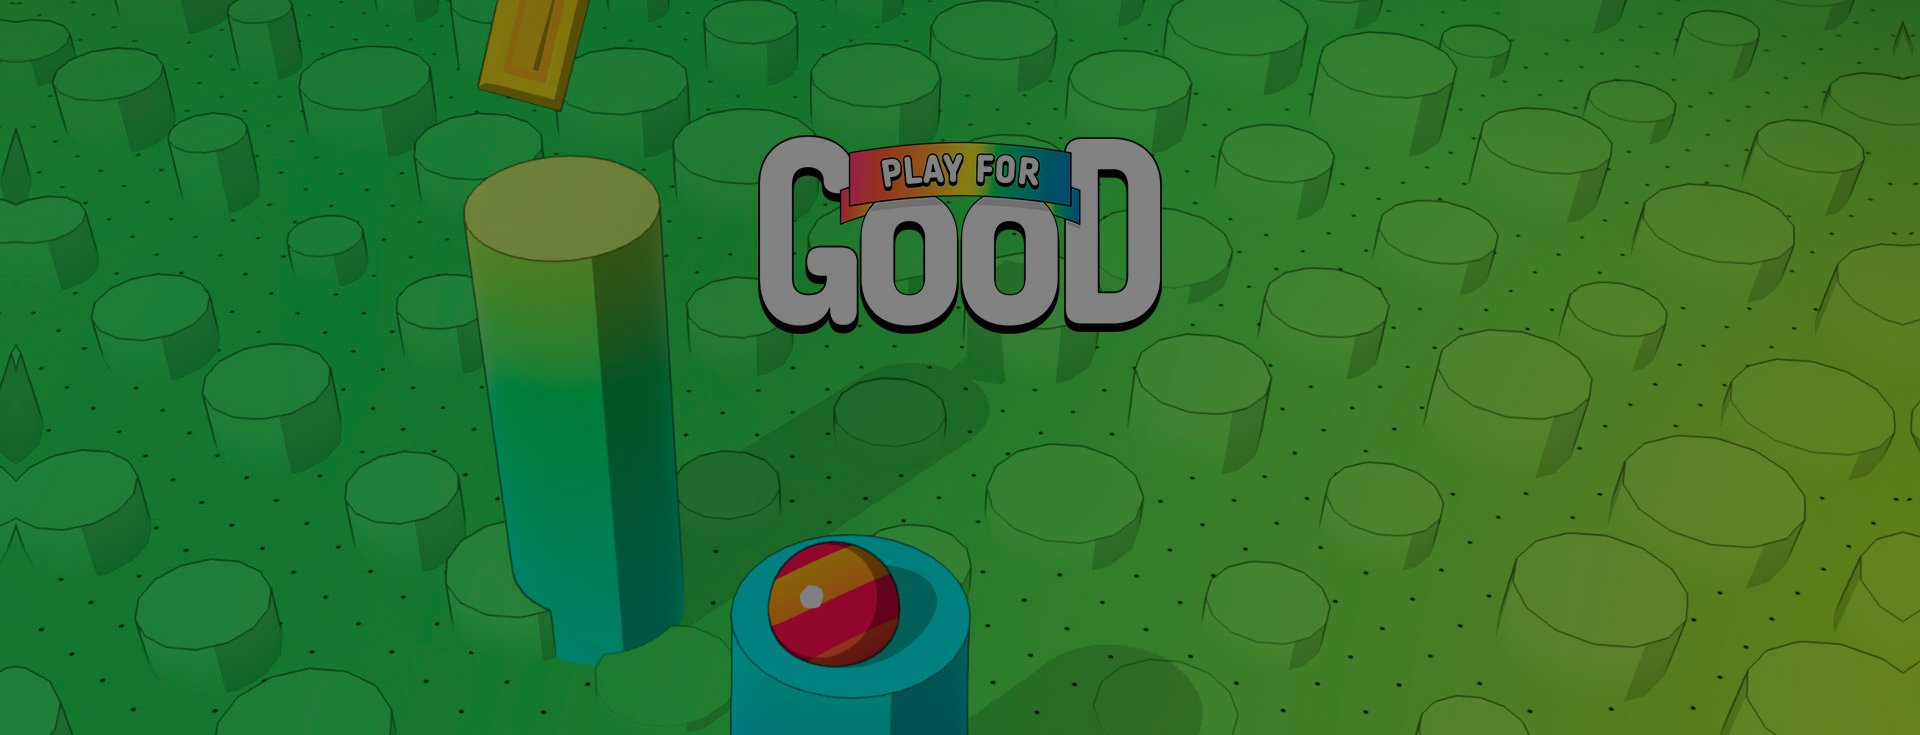 Play for Good